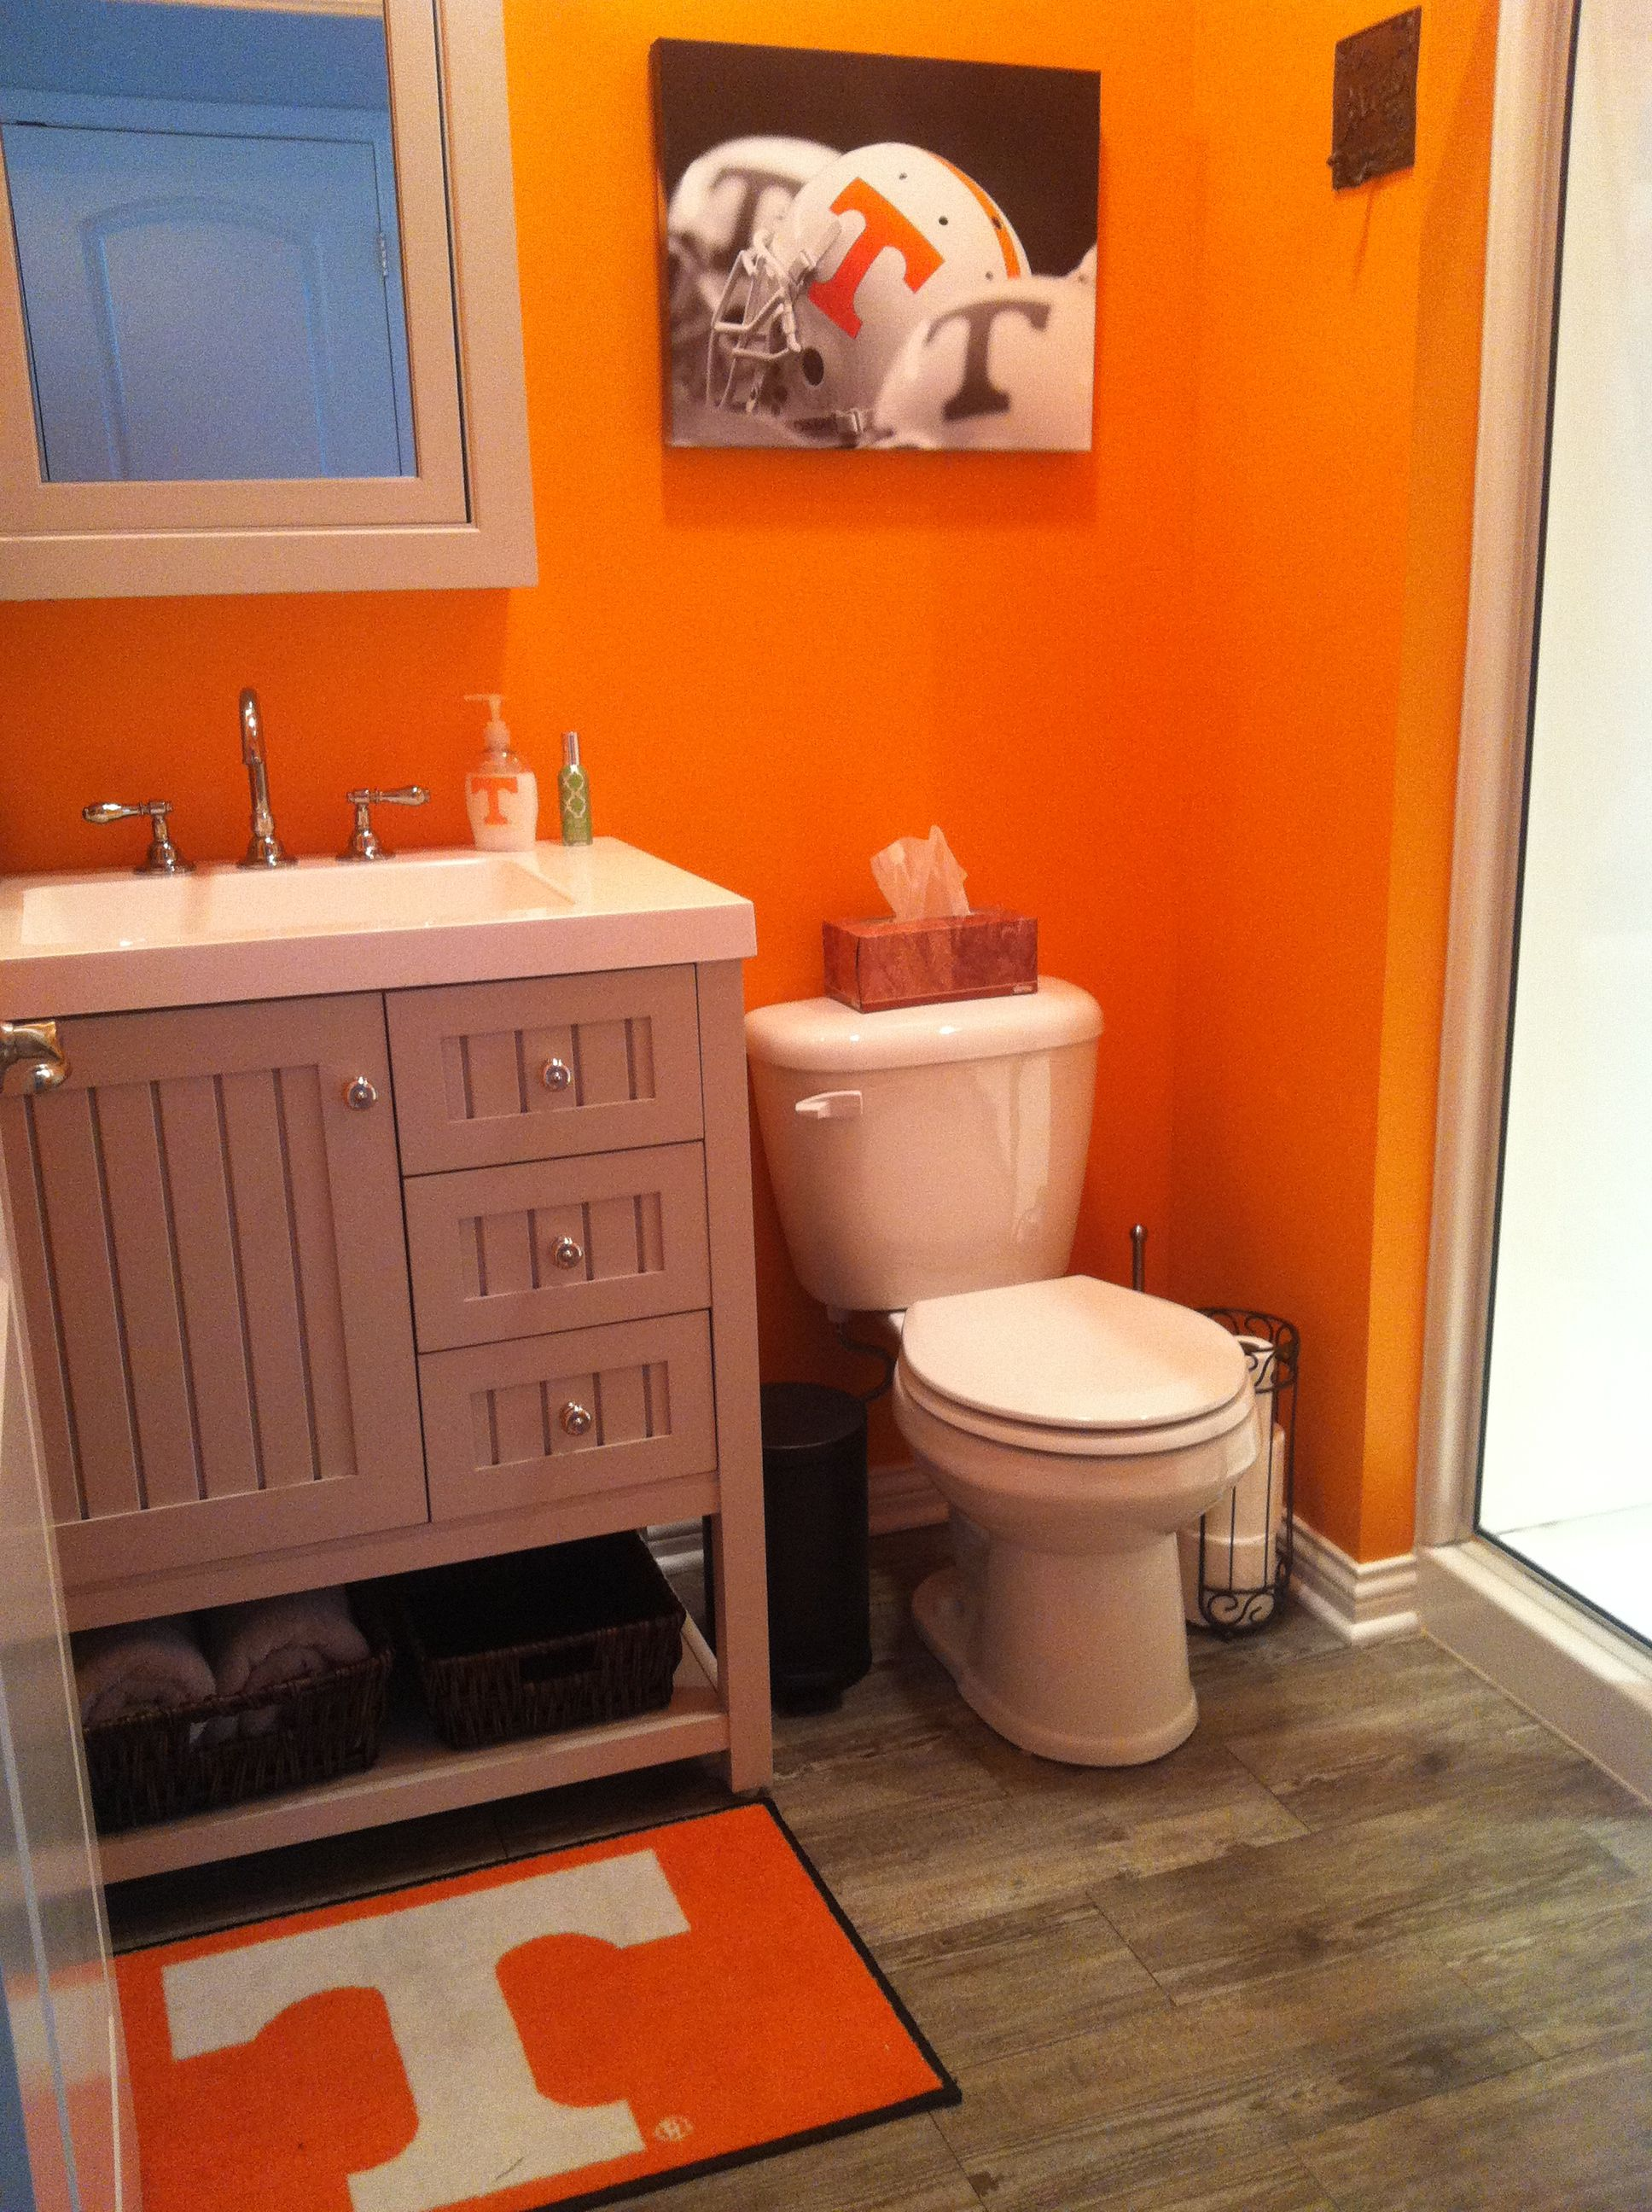 I Am Wanting To Paint My Bathroom Hmmm Tennessee Vols Www Rolltidewareagle Inform And Entertain College Football Stories